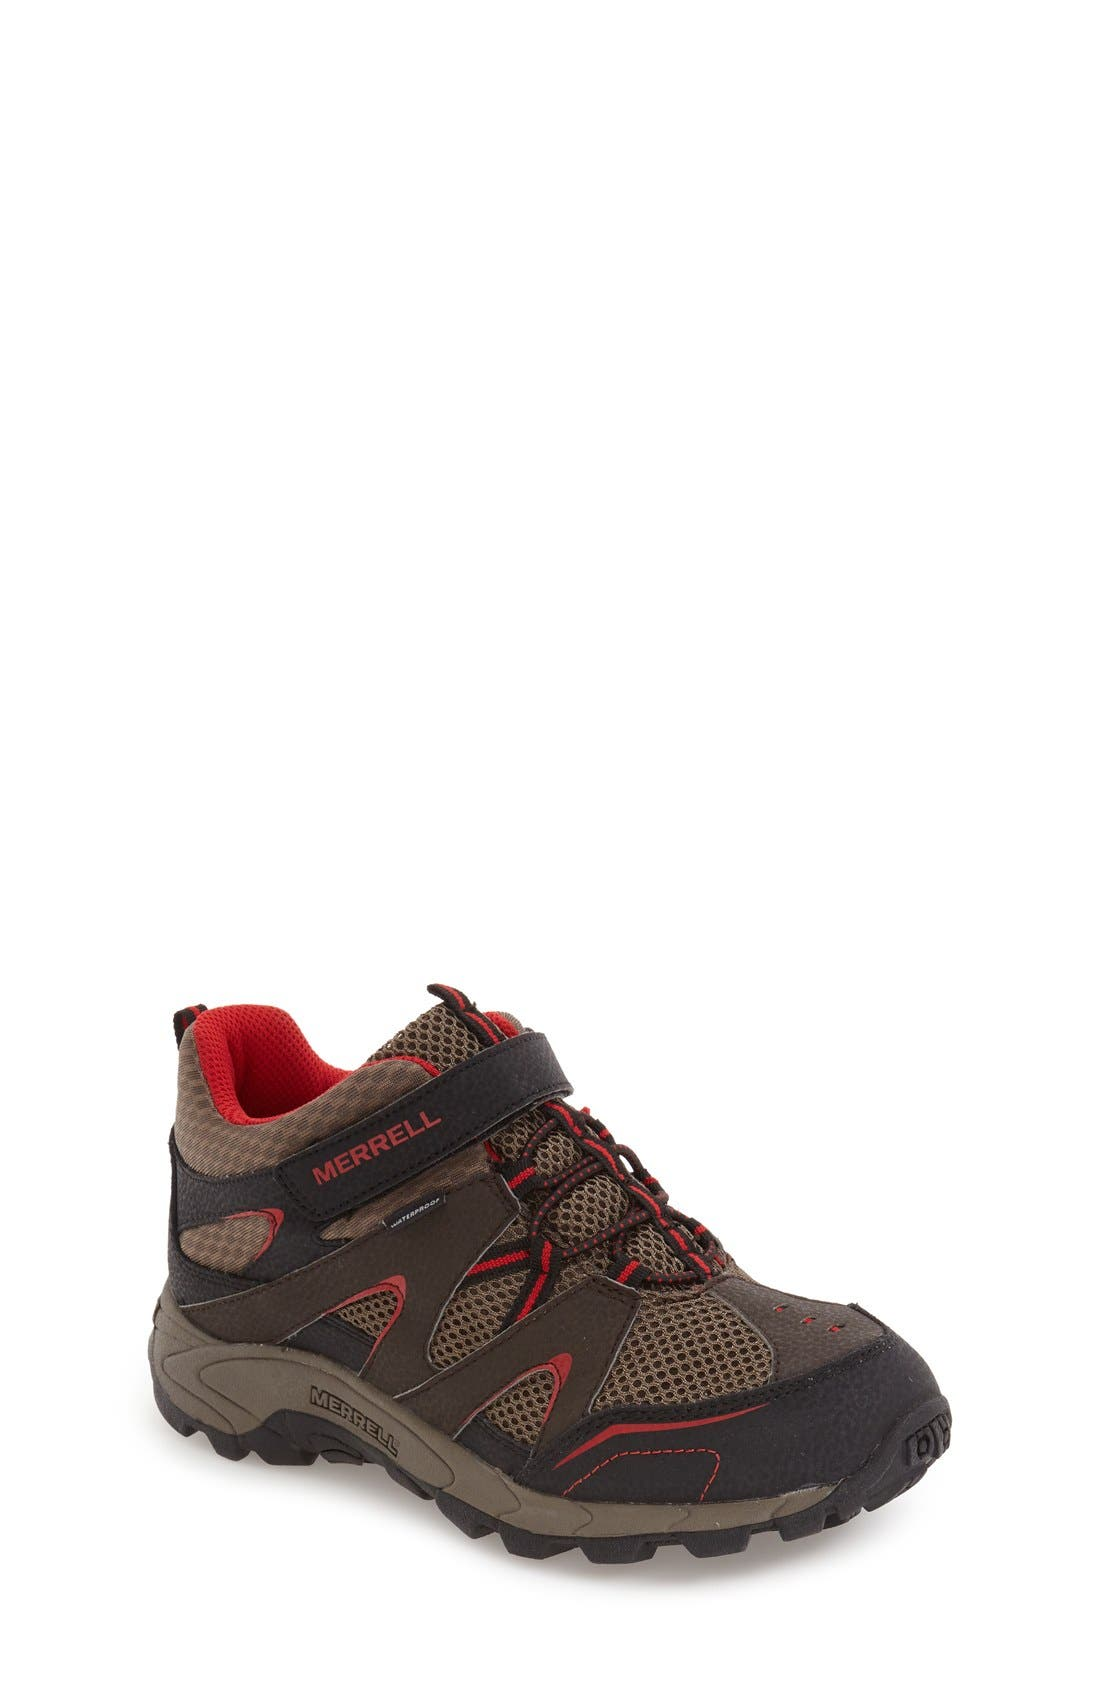 'Hilltop' Waterproof Sneaker,                             Main thumbnail 1, color,                             Brown